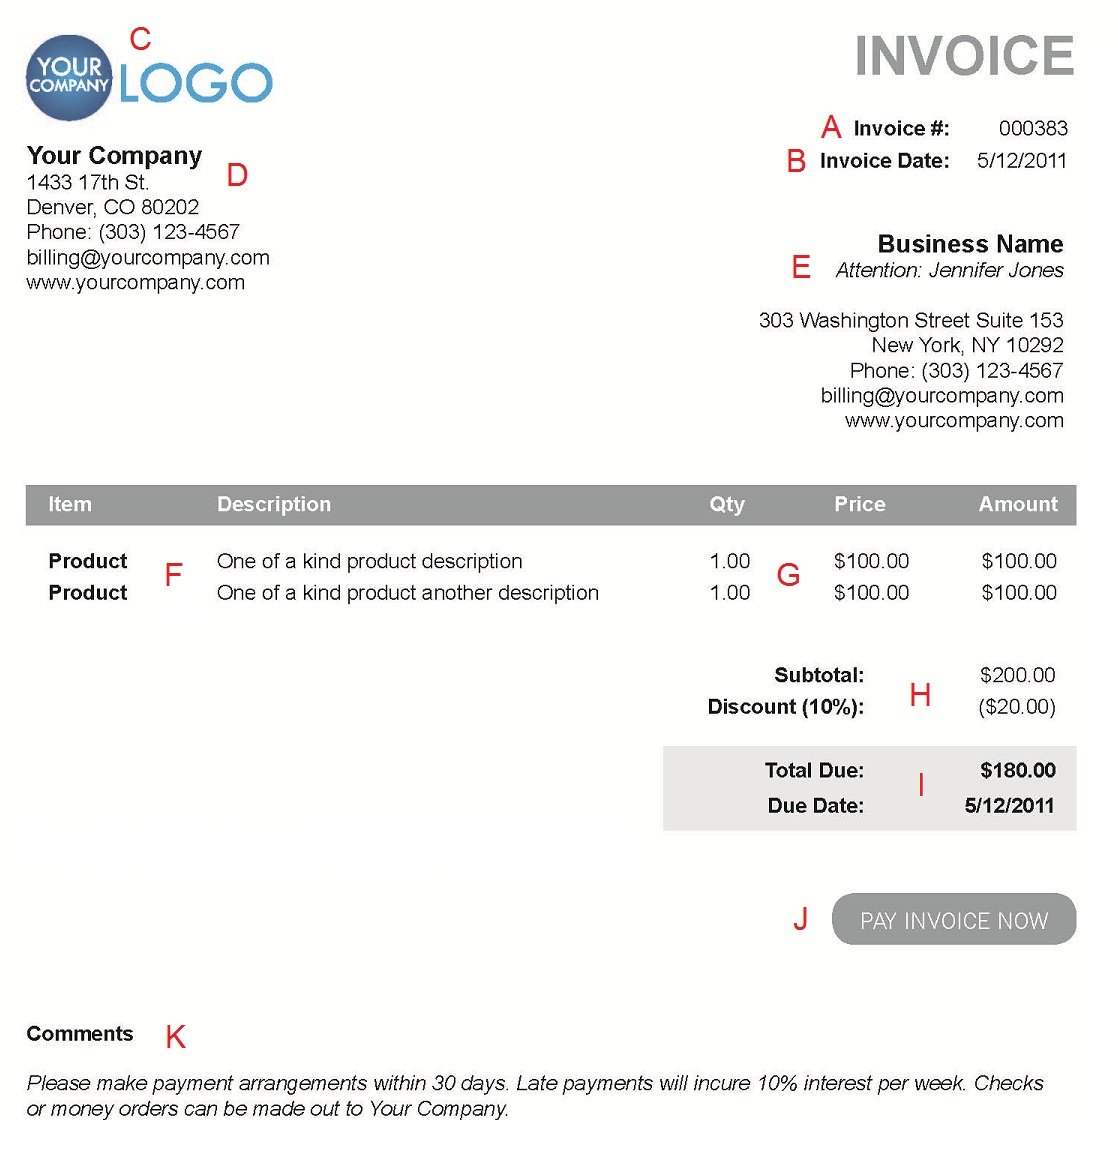 Usdgus  Unusual The  Different Sections Of An Electronic Payment Invoice With Exciting A  With Agreeable Donation Invoice Also  Invoice Template In Addition Printable Invoice Pdf And Template For An Invoice As Well As Invoice Address Additionally Ford F  Invoice Price From Paysimplecom With Usdgus  Exciting The  Different Sections Of An Electronic Payment Invoice With Agreeable A  And Unusual Donation Invoice Also  Invoice Template In Addition Printable Invoice Pdf From Paysimplecom